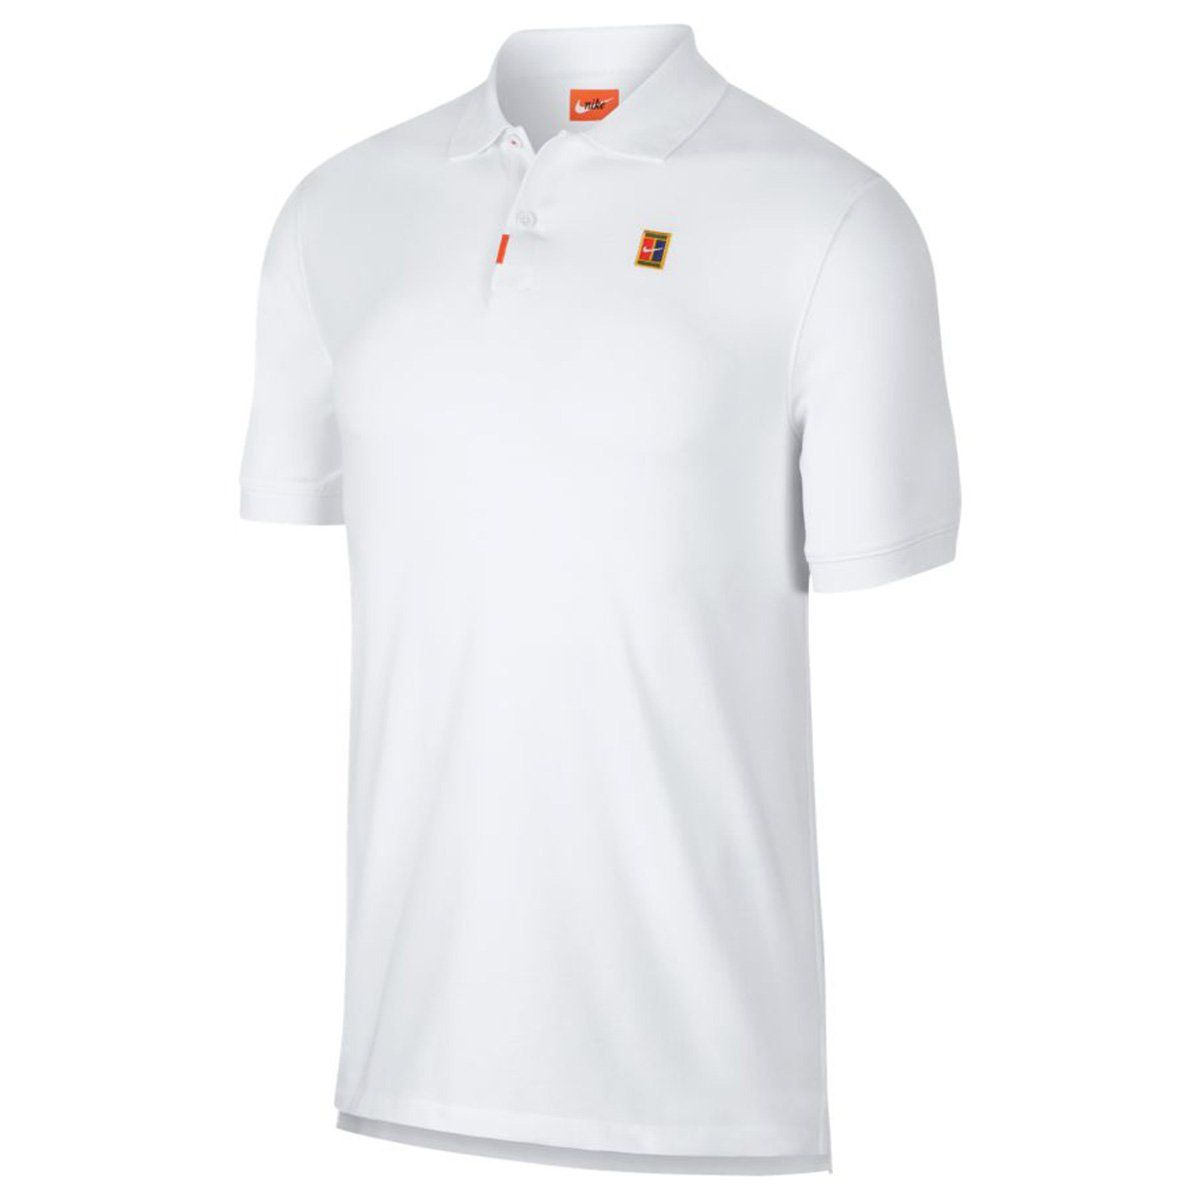 Camisa Polo Nike Natural Performance - Branco